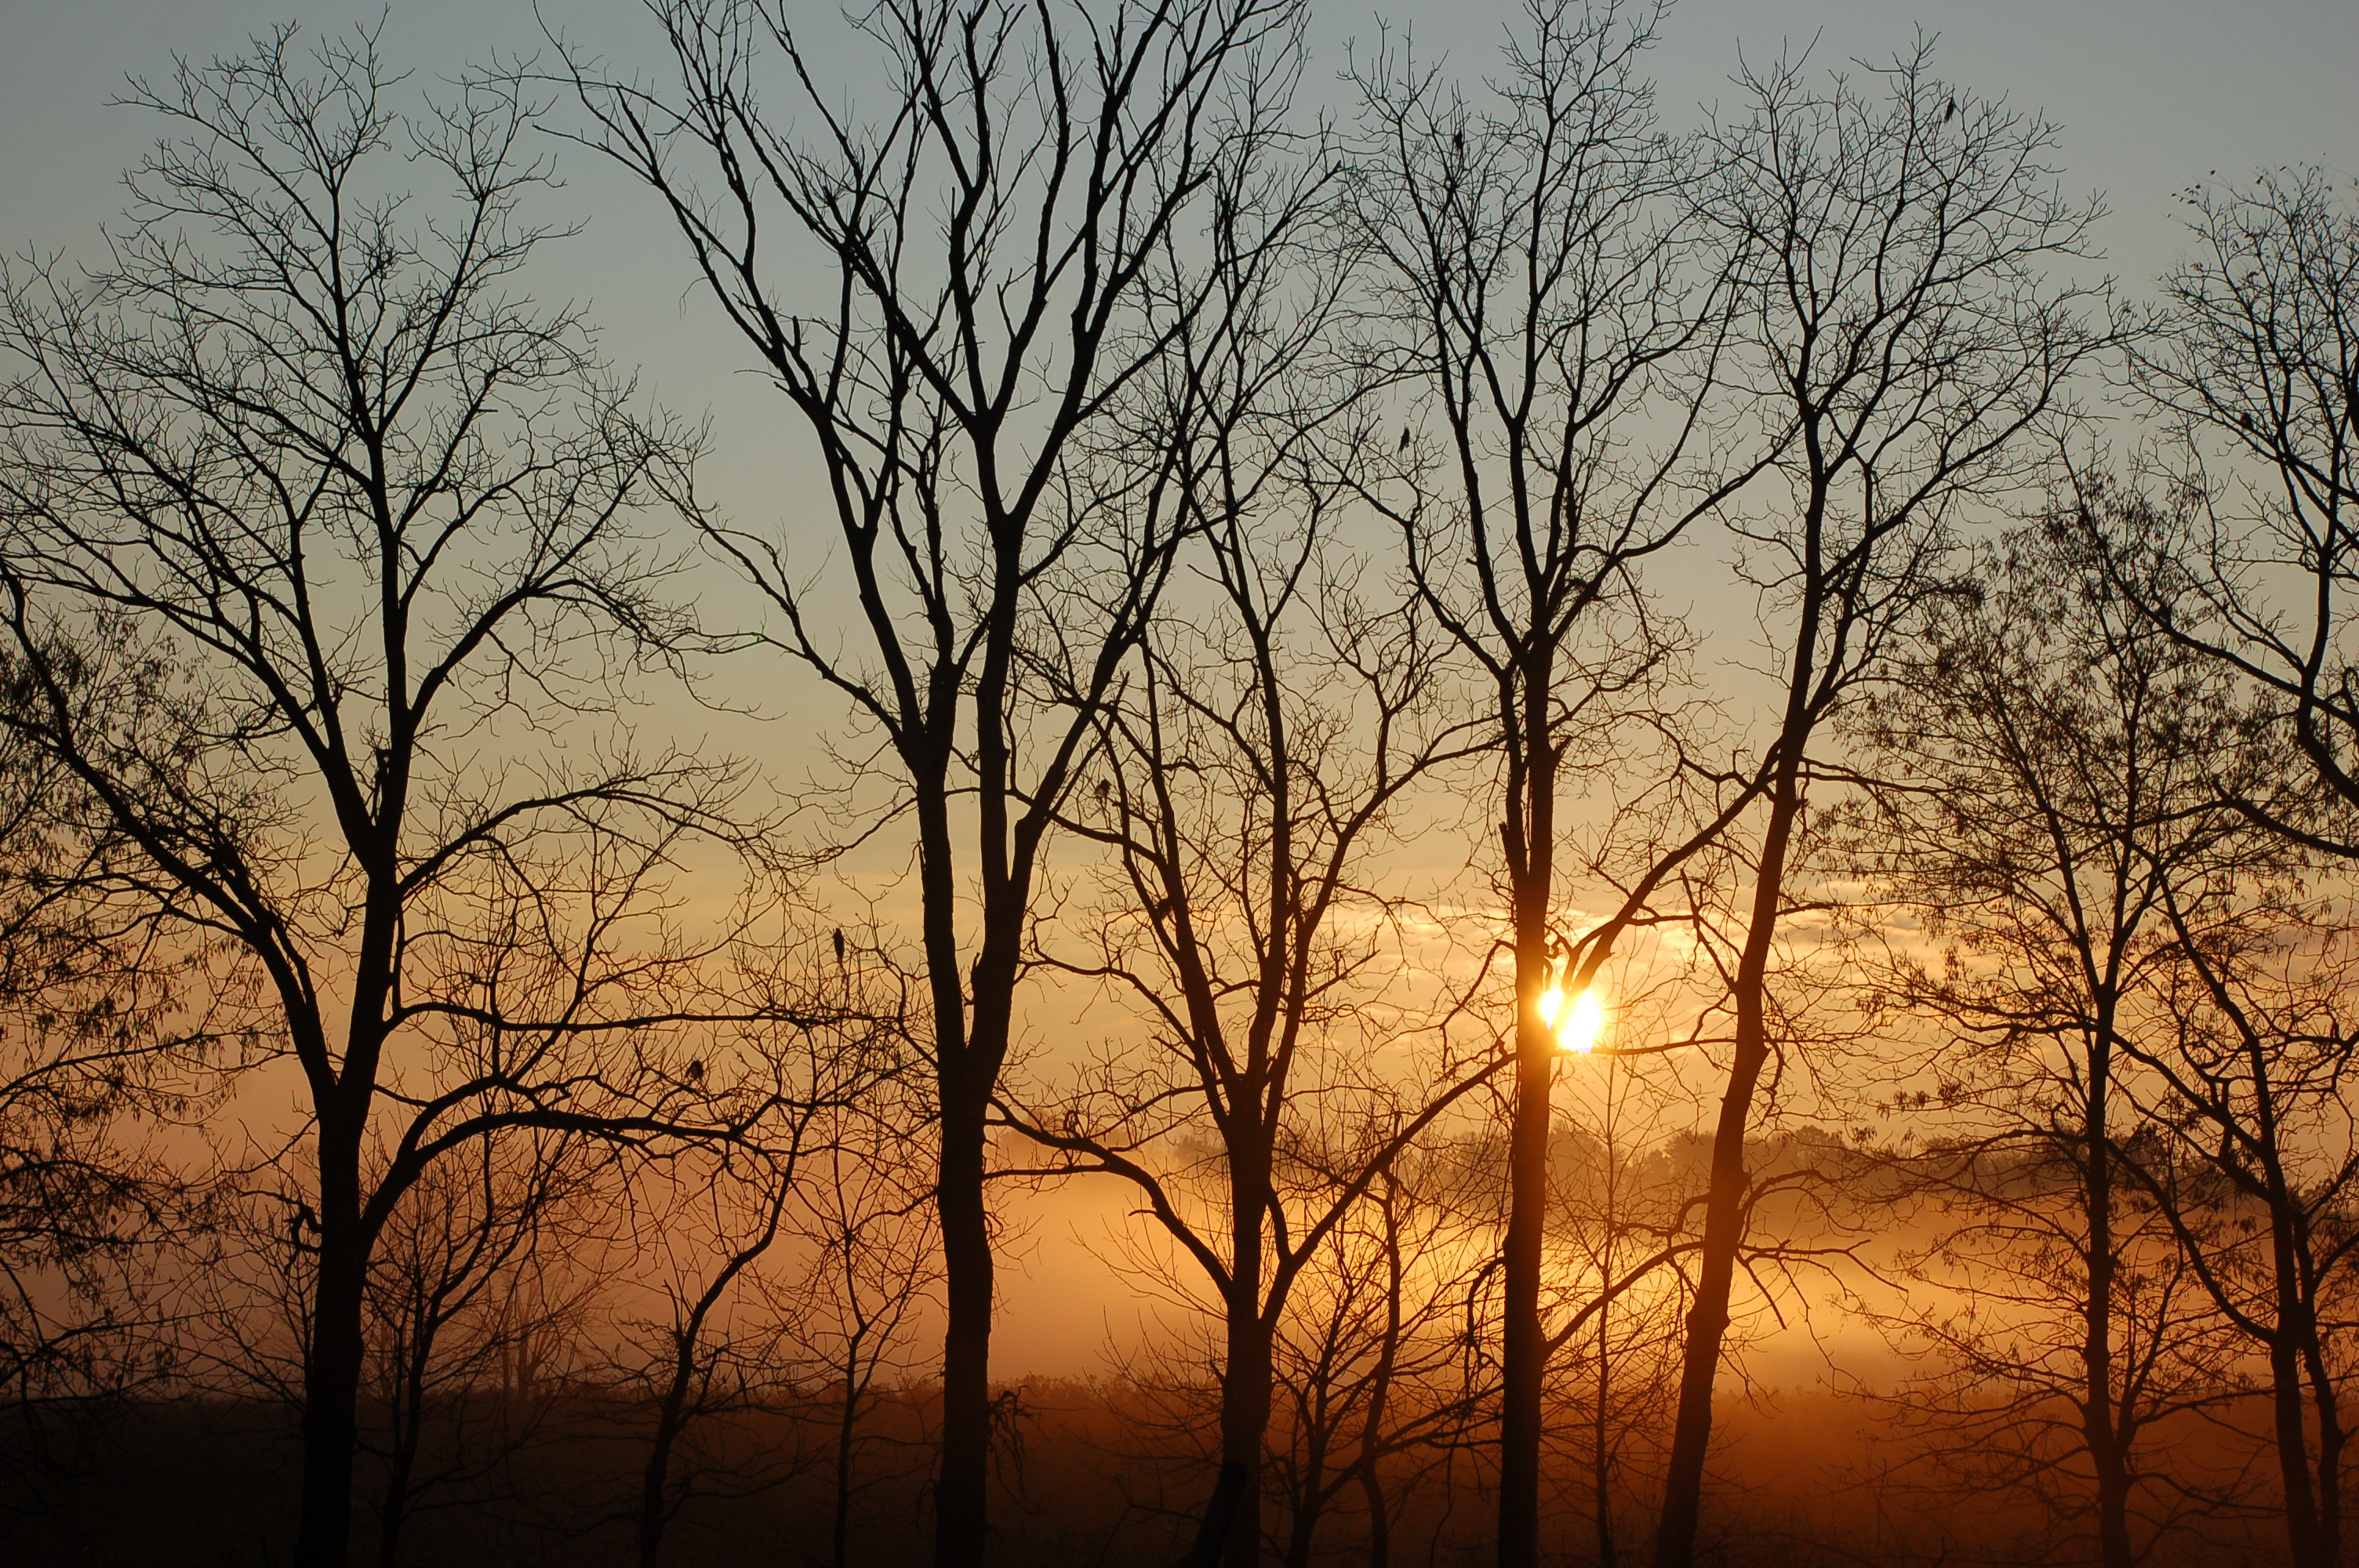 Fog and trees by Bruce Stambaugh